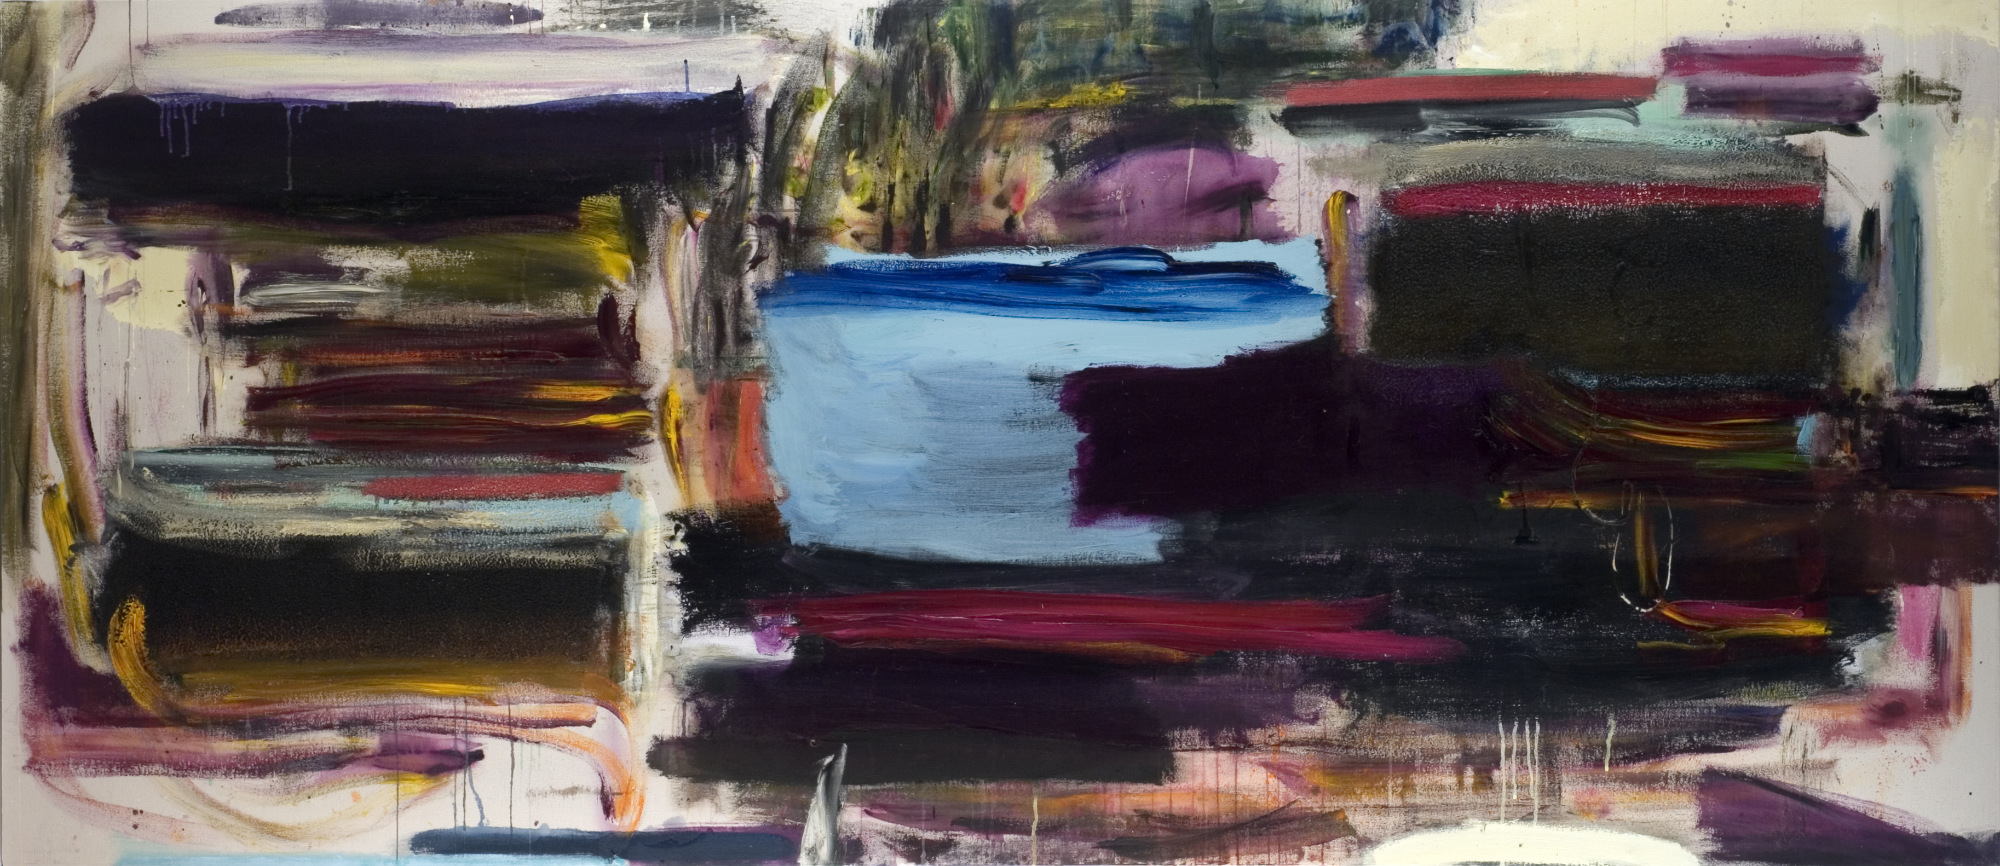 She Moves Through the Fair by Pete Hoida